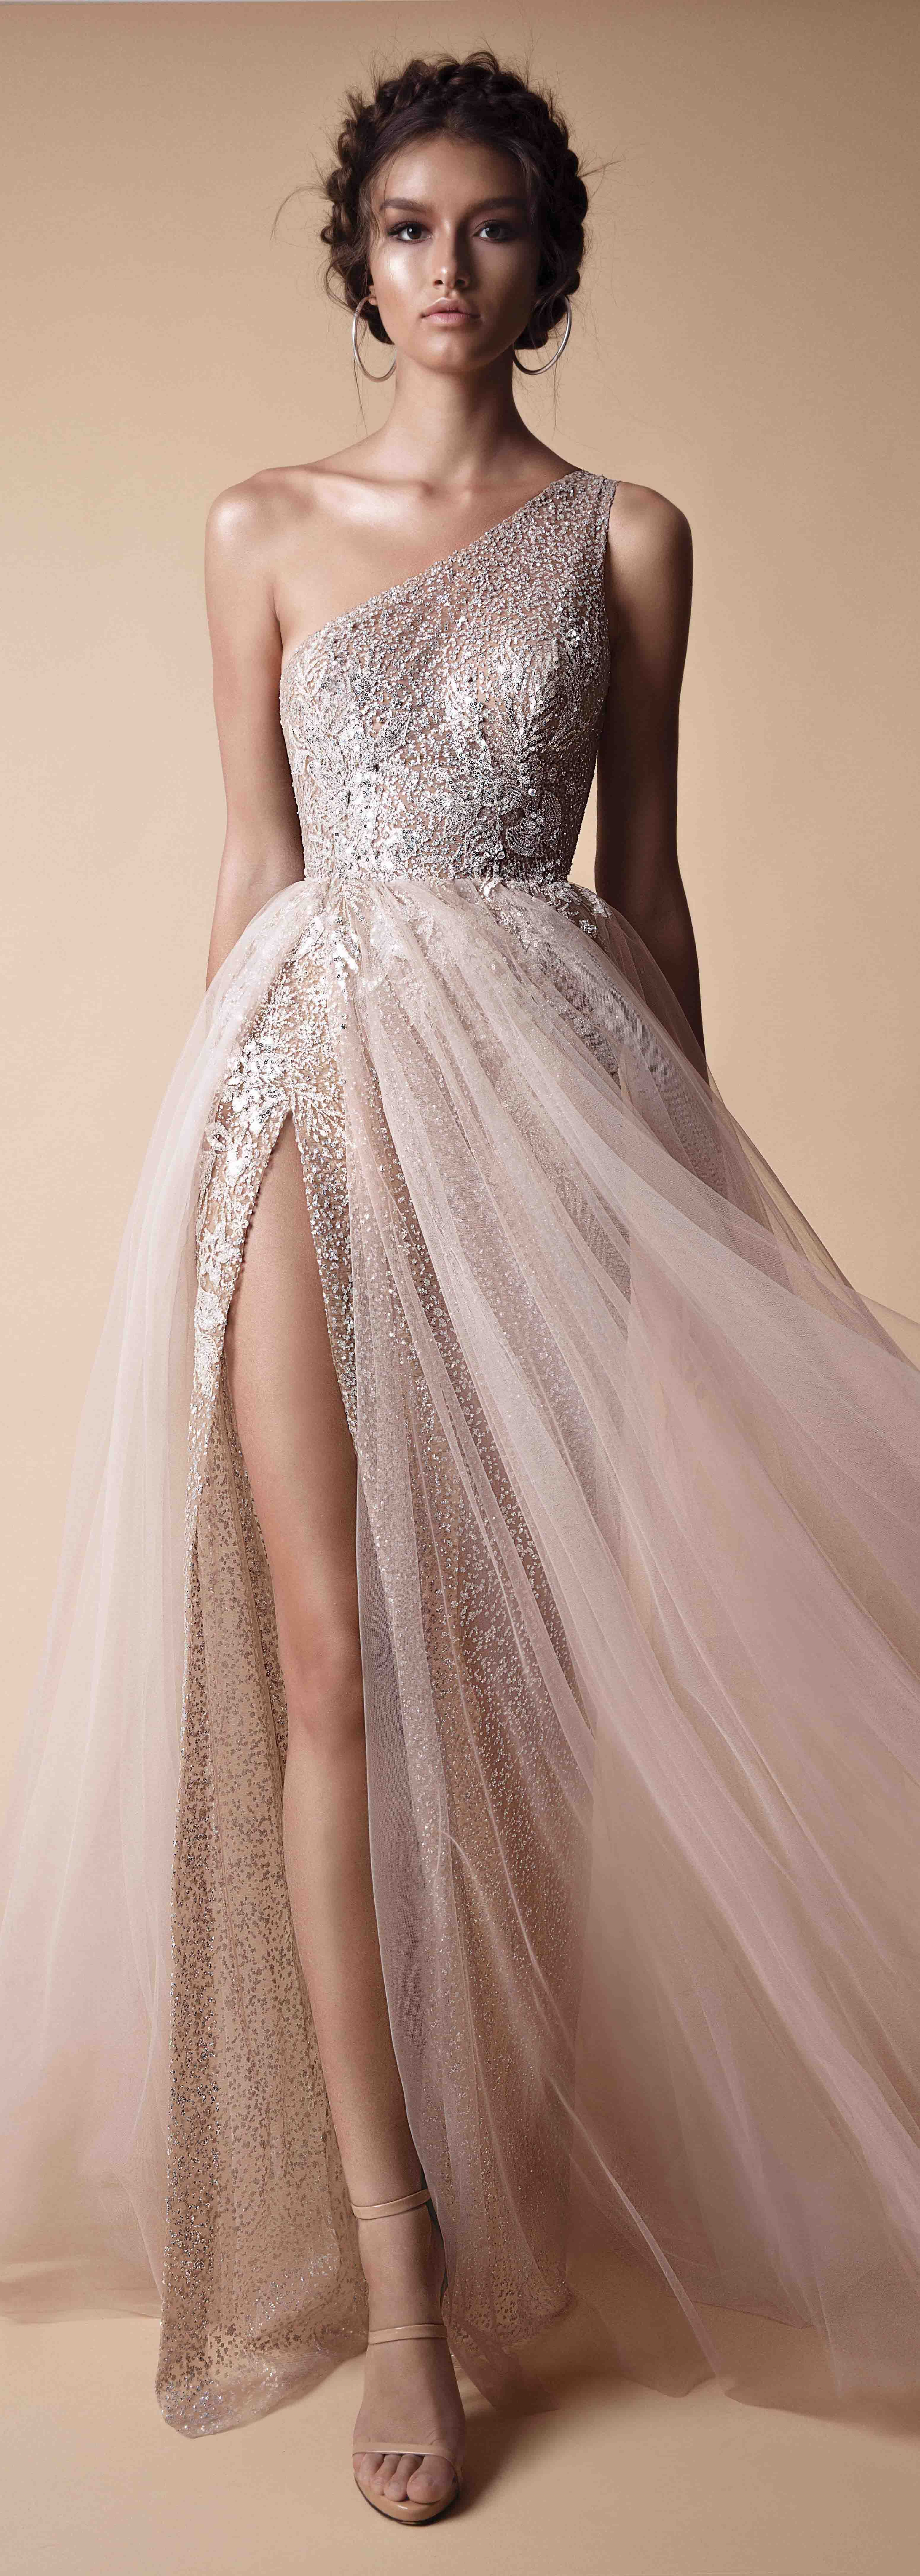 Evening dresses 2018 collection prom